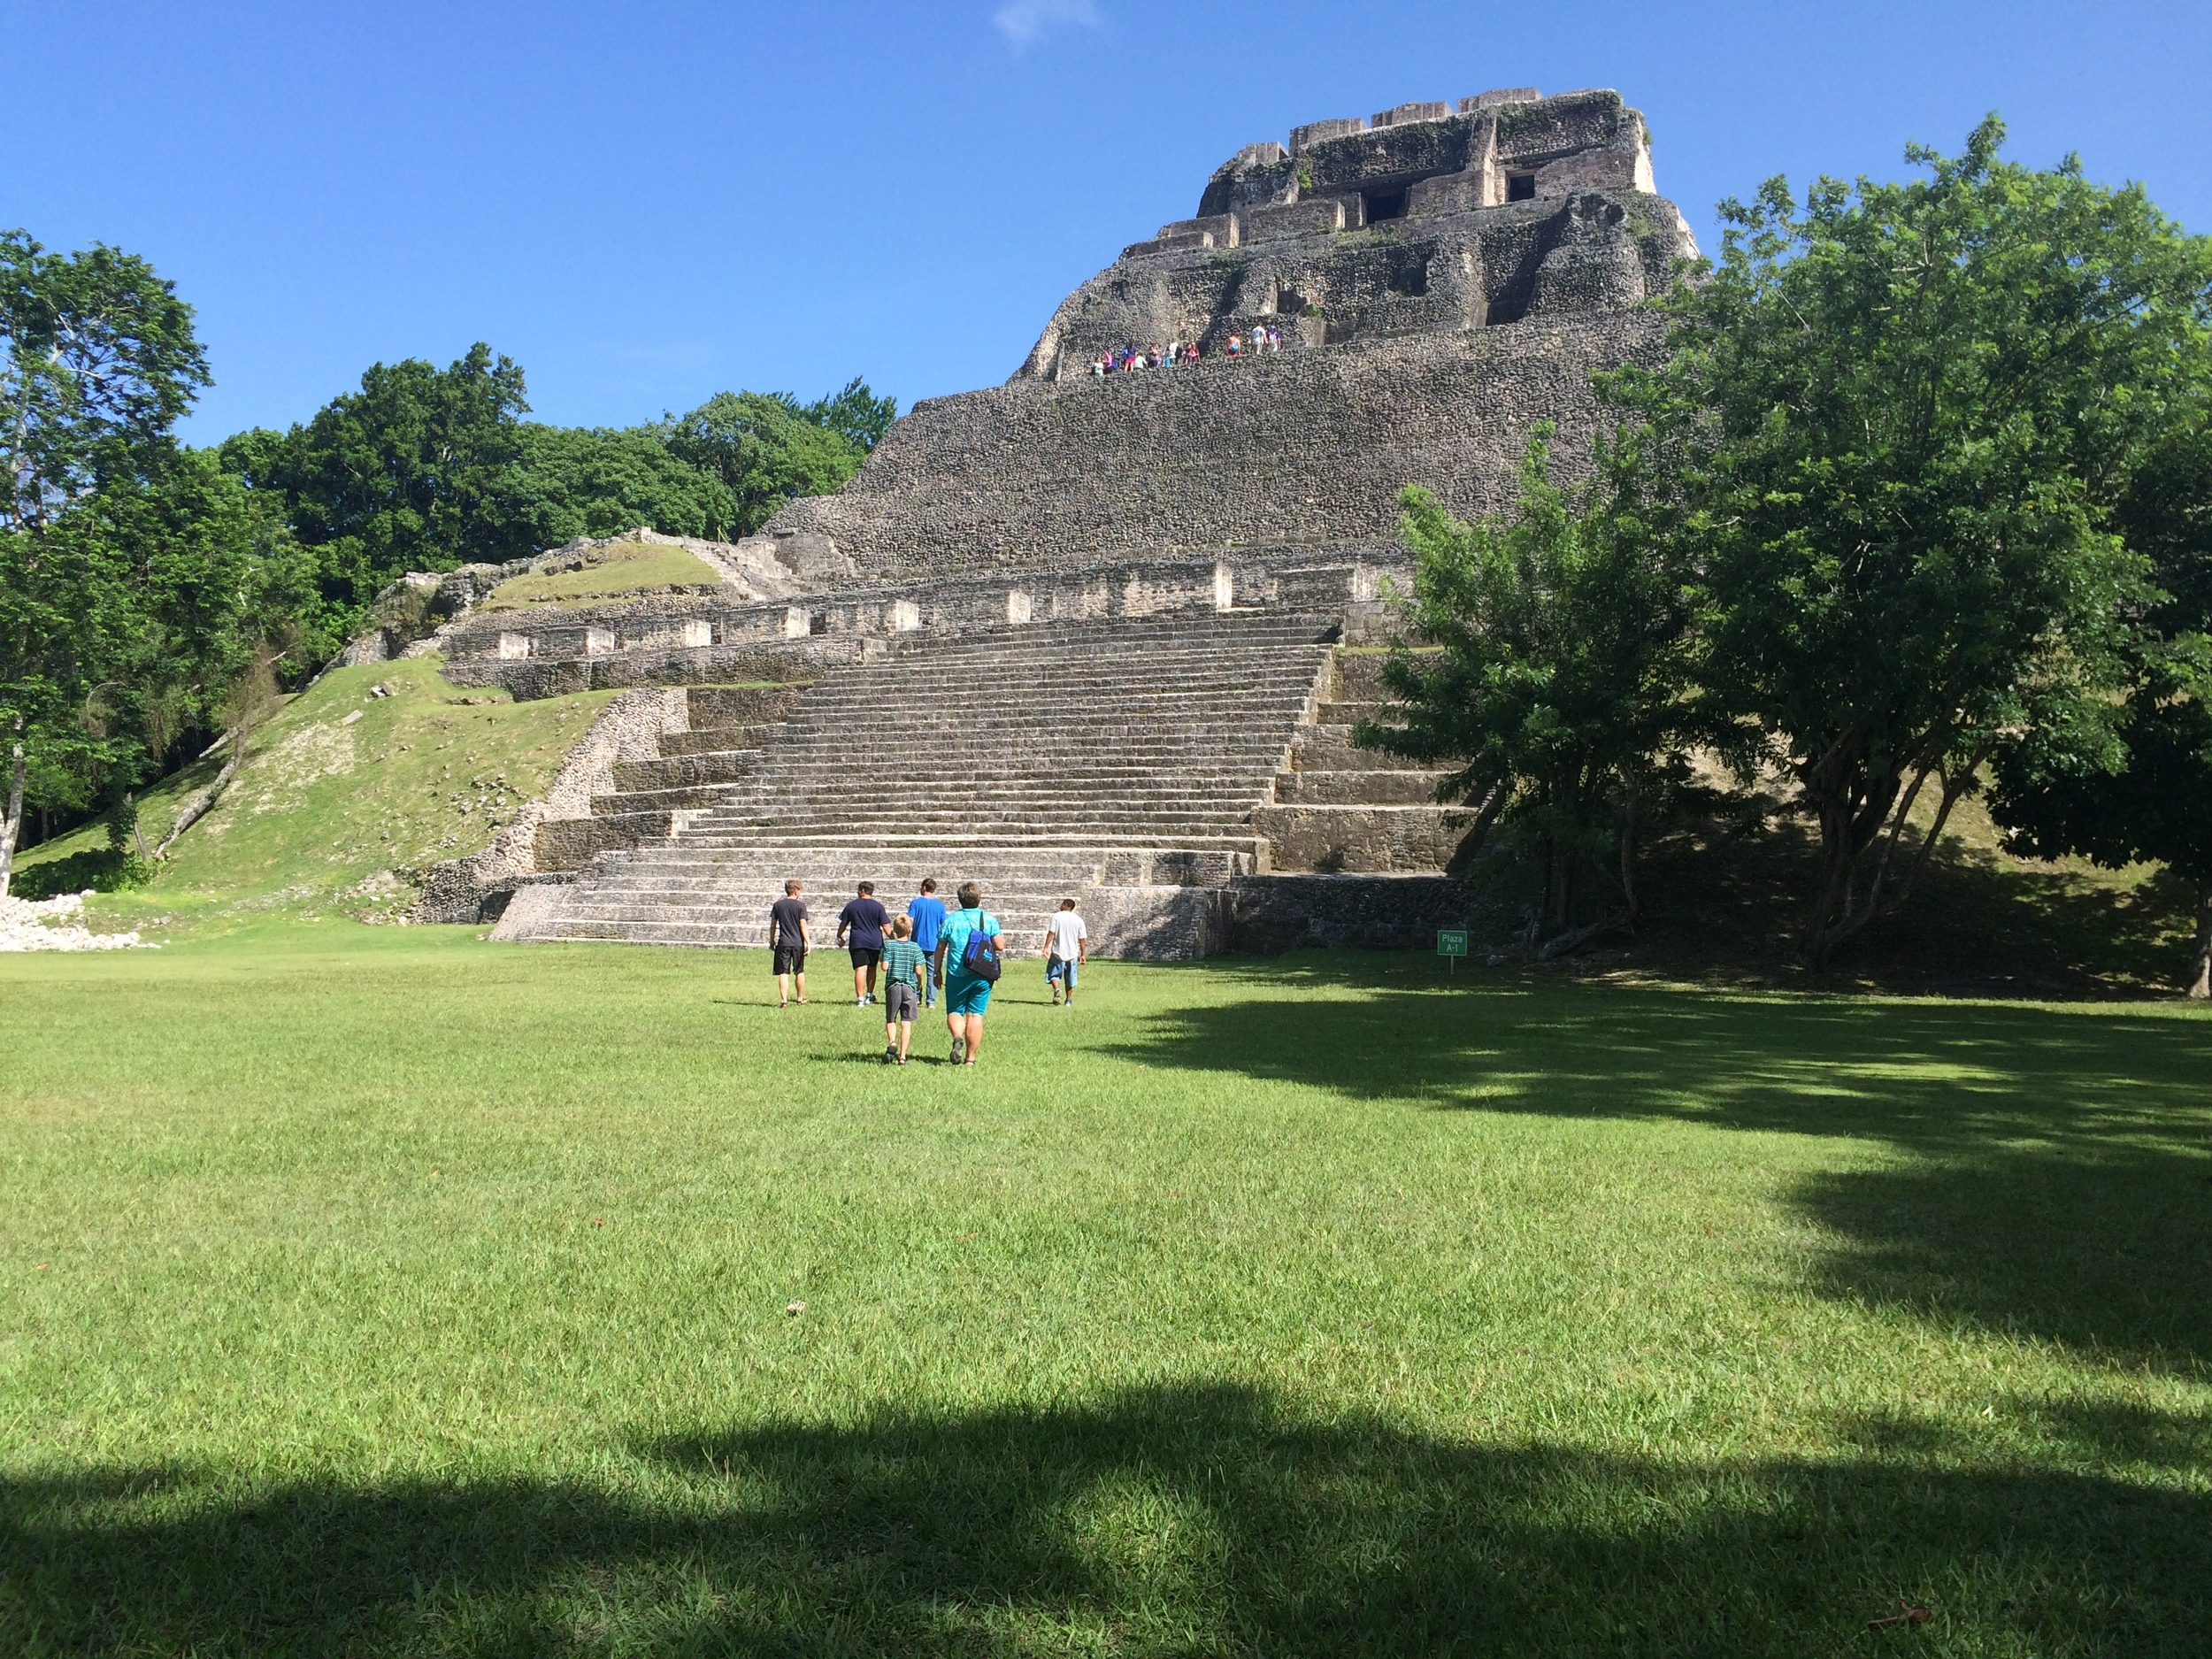 Mayan ruins can be found throughout Belize